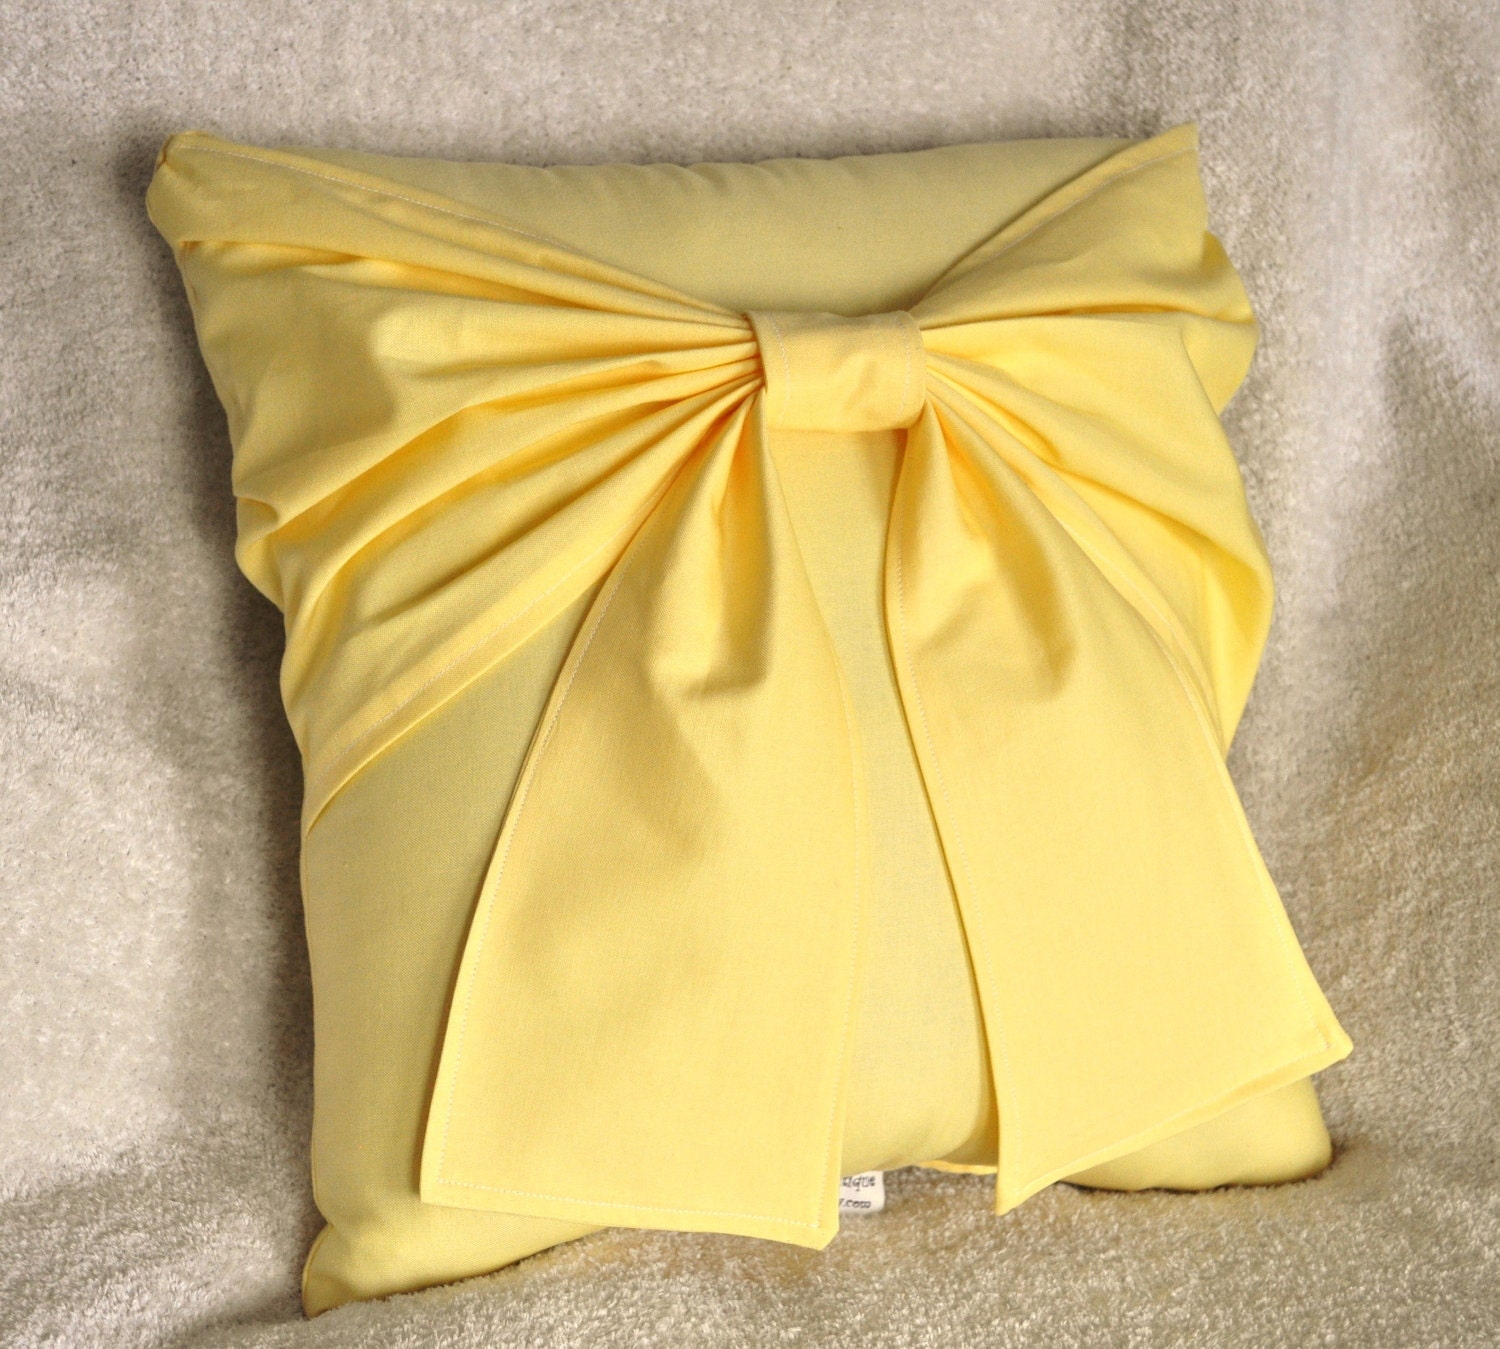 Decorative Pillows Etsy : Yellow Bow Pillow Decorative Pillow by bedbuggs on Etsy